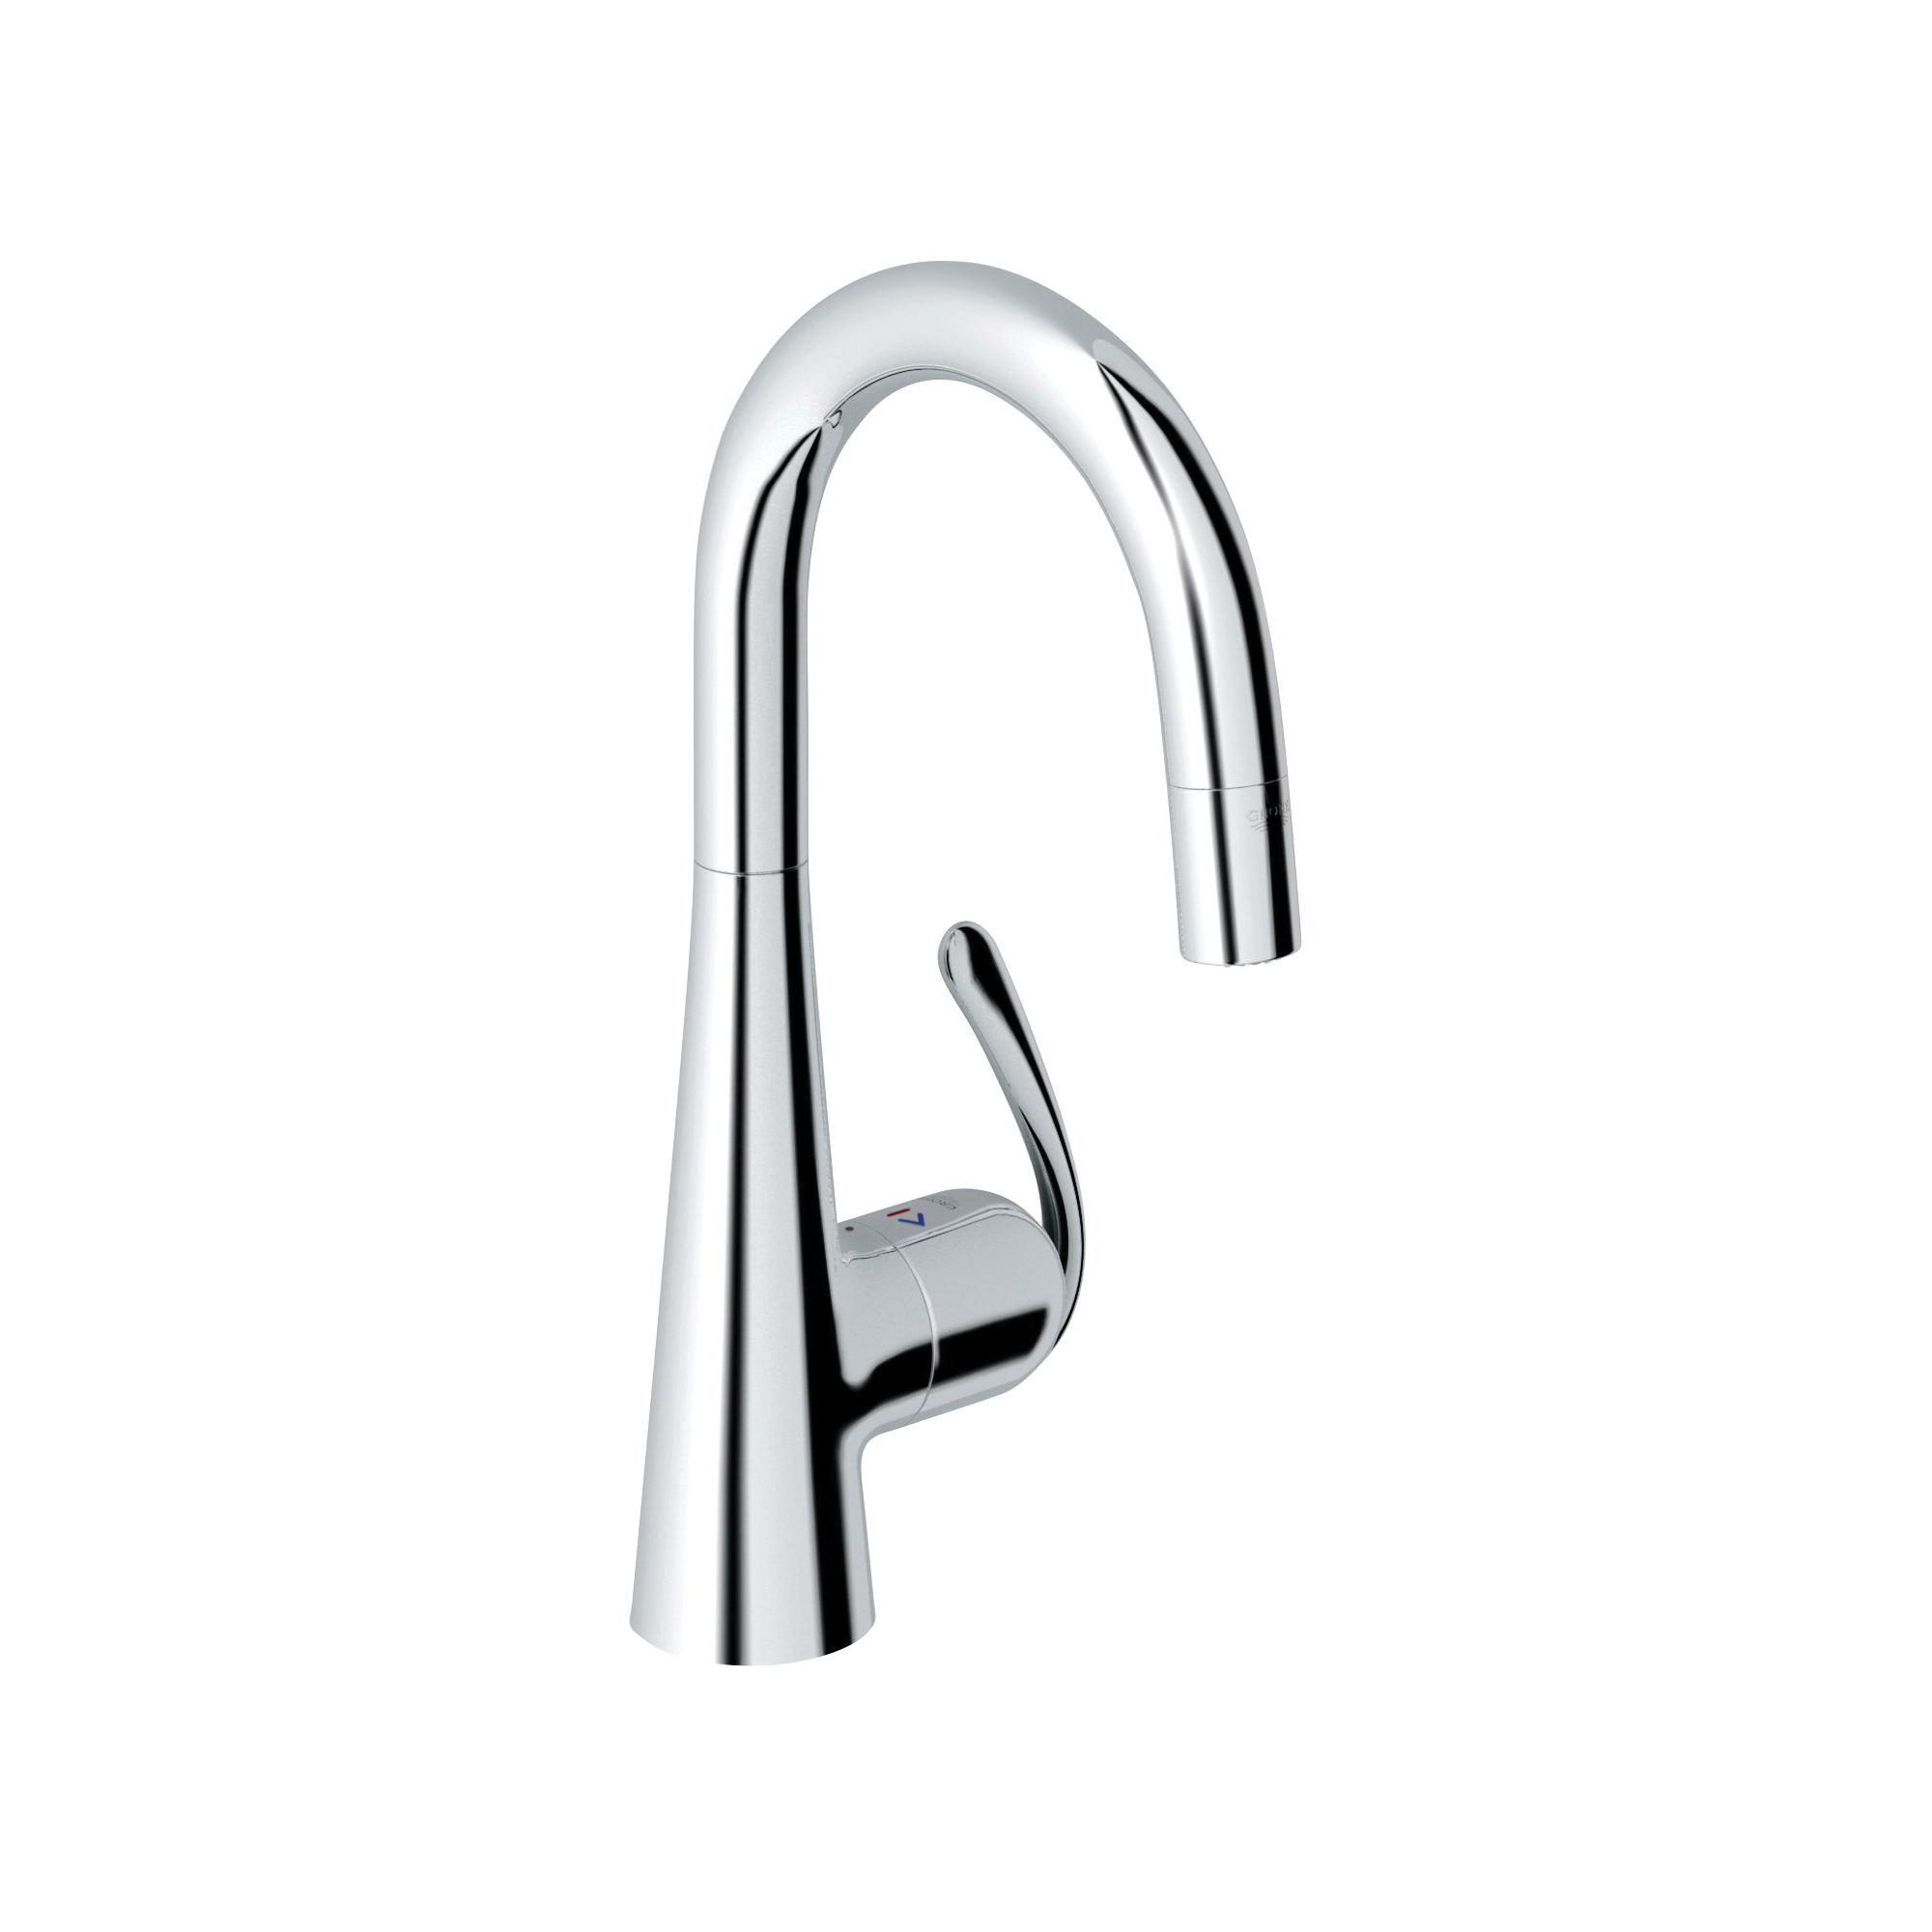 GROHE 32283000 Ladylux3 Pro Sink Mixer, 1.75 gpm, 1 Handle, Chrome Plated, Import